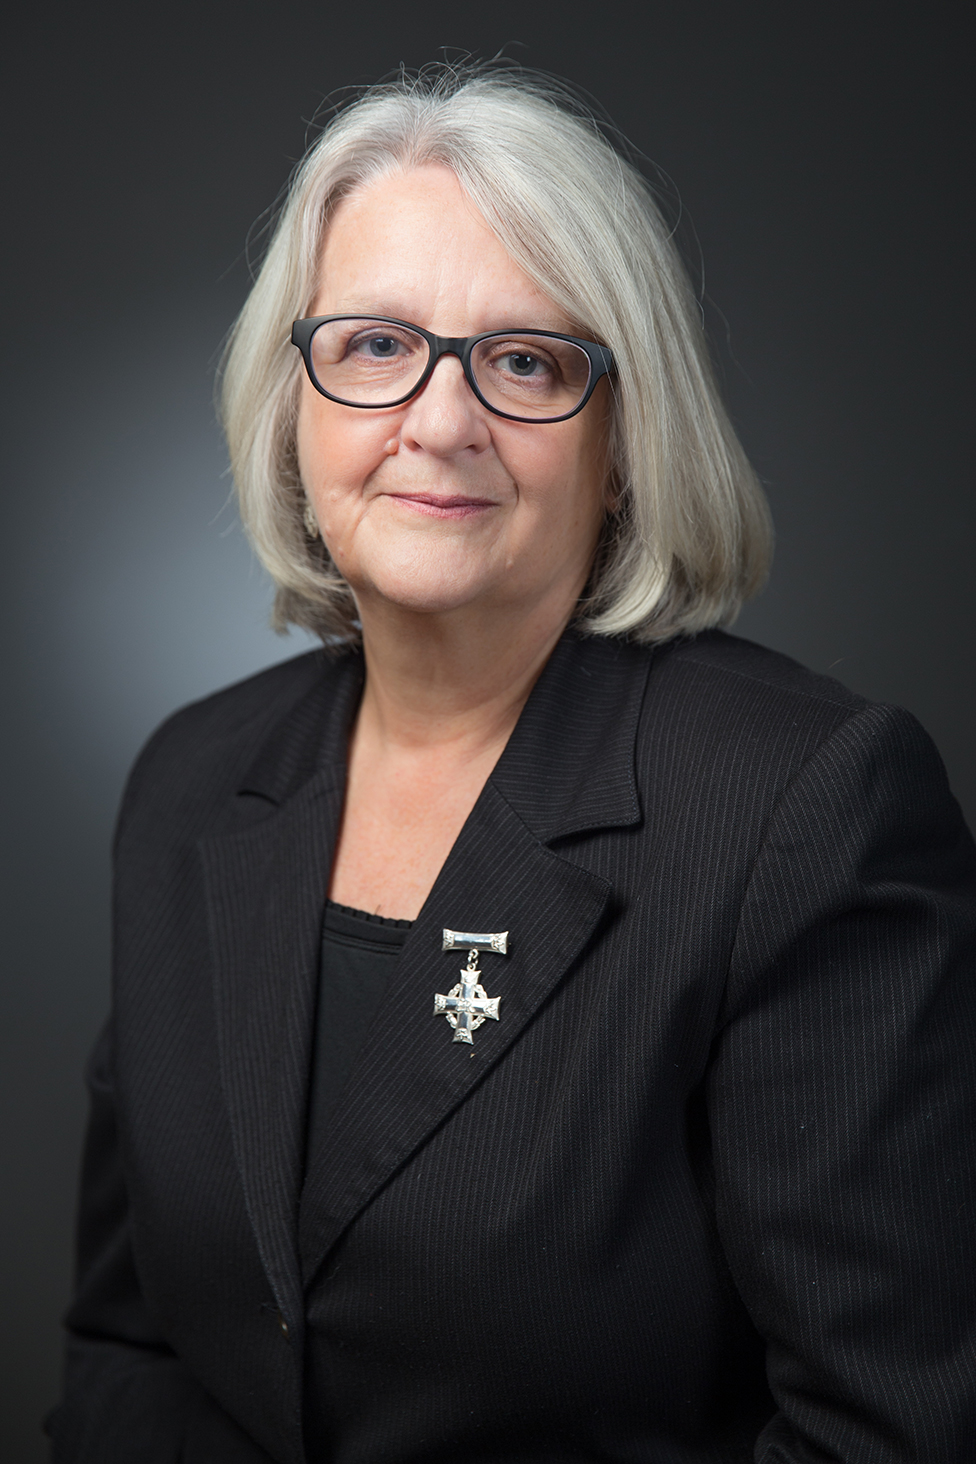 Sheila Anderson, Canada's Silver Cross Mother for 2015-2016 was the first from the Northwest Territories.